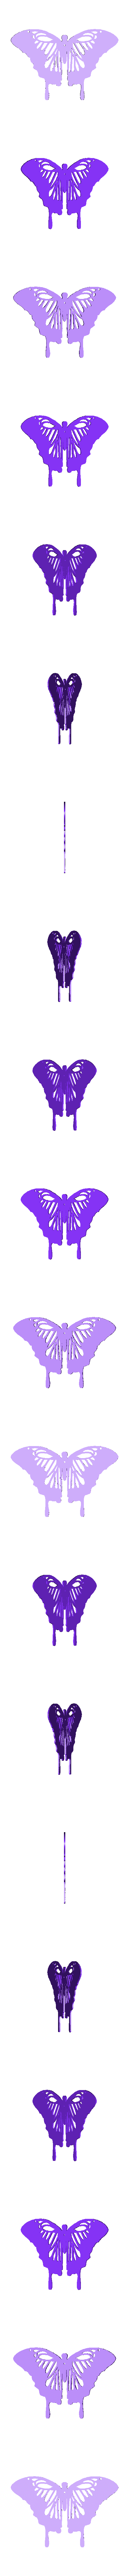 Papillon_exterieur.stl Download free STL file Wall decoration Butterfly 2 colours • 3D printable object, oasisk